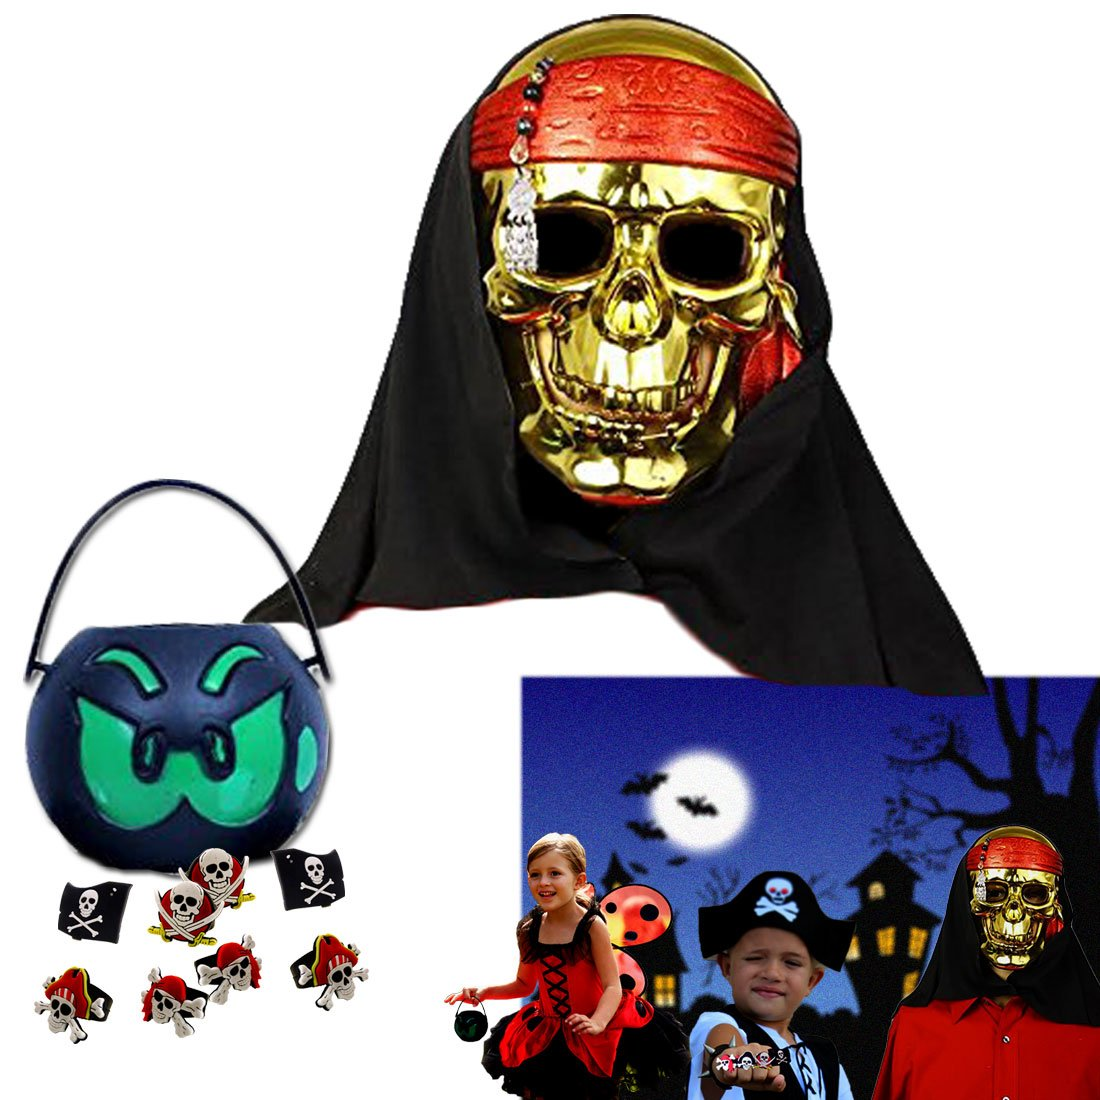 Dazzling Toys Halloween Set Kids Halloween Party Pirate Costume Set 12 Halloween Candy Holders and 12 Pirate Rings. Includes 1 Mask